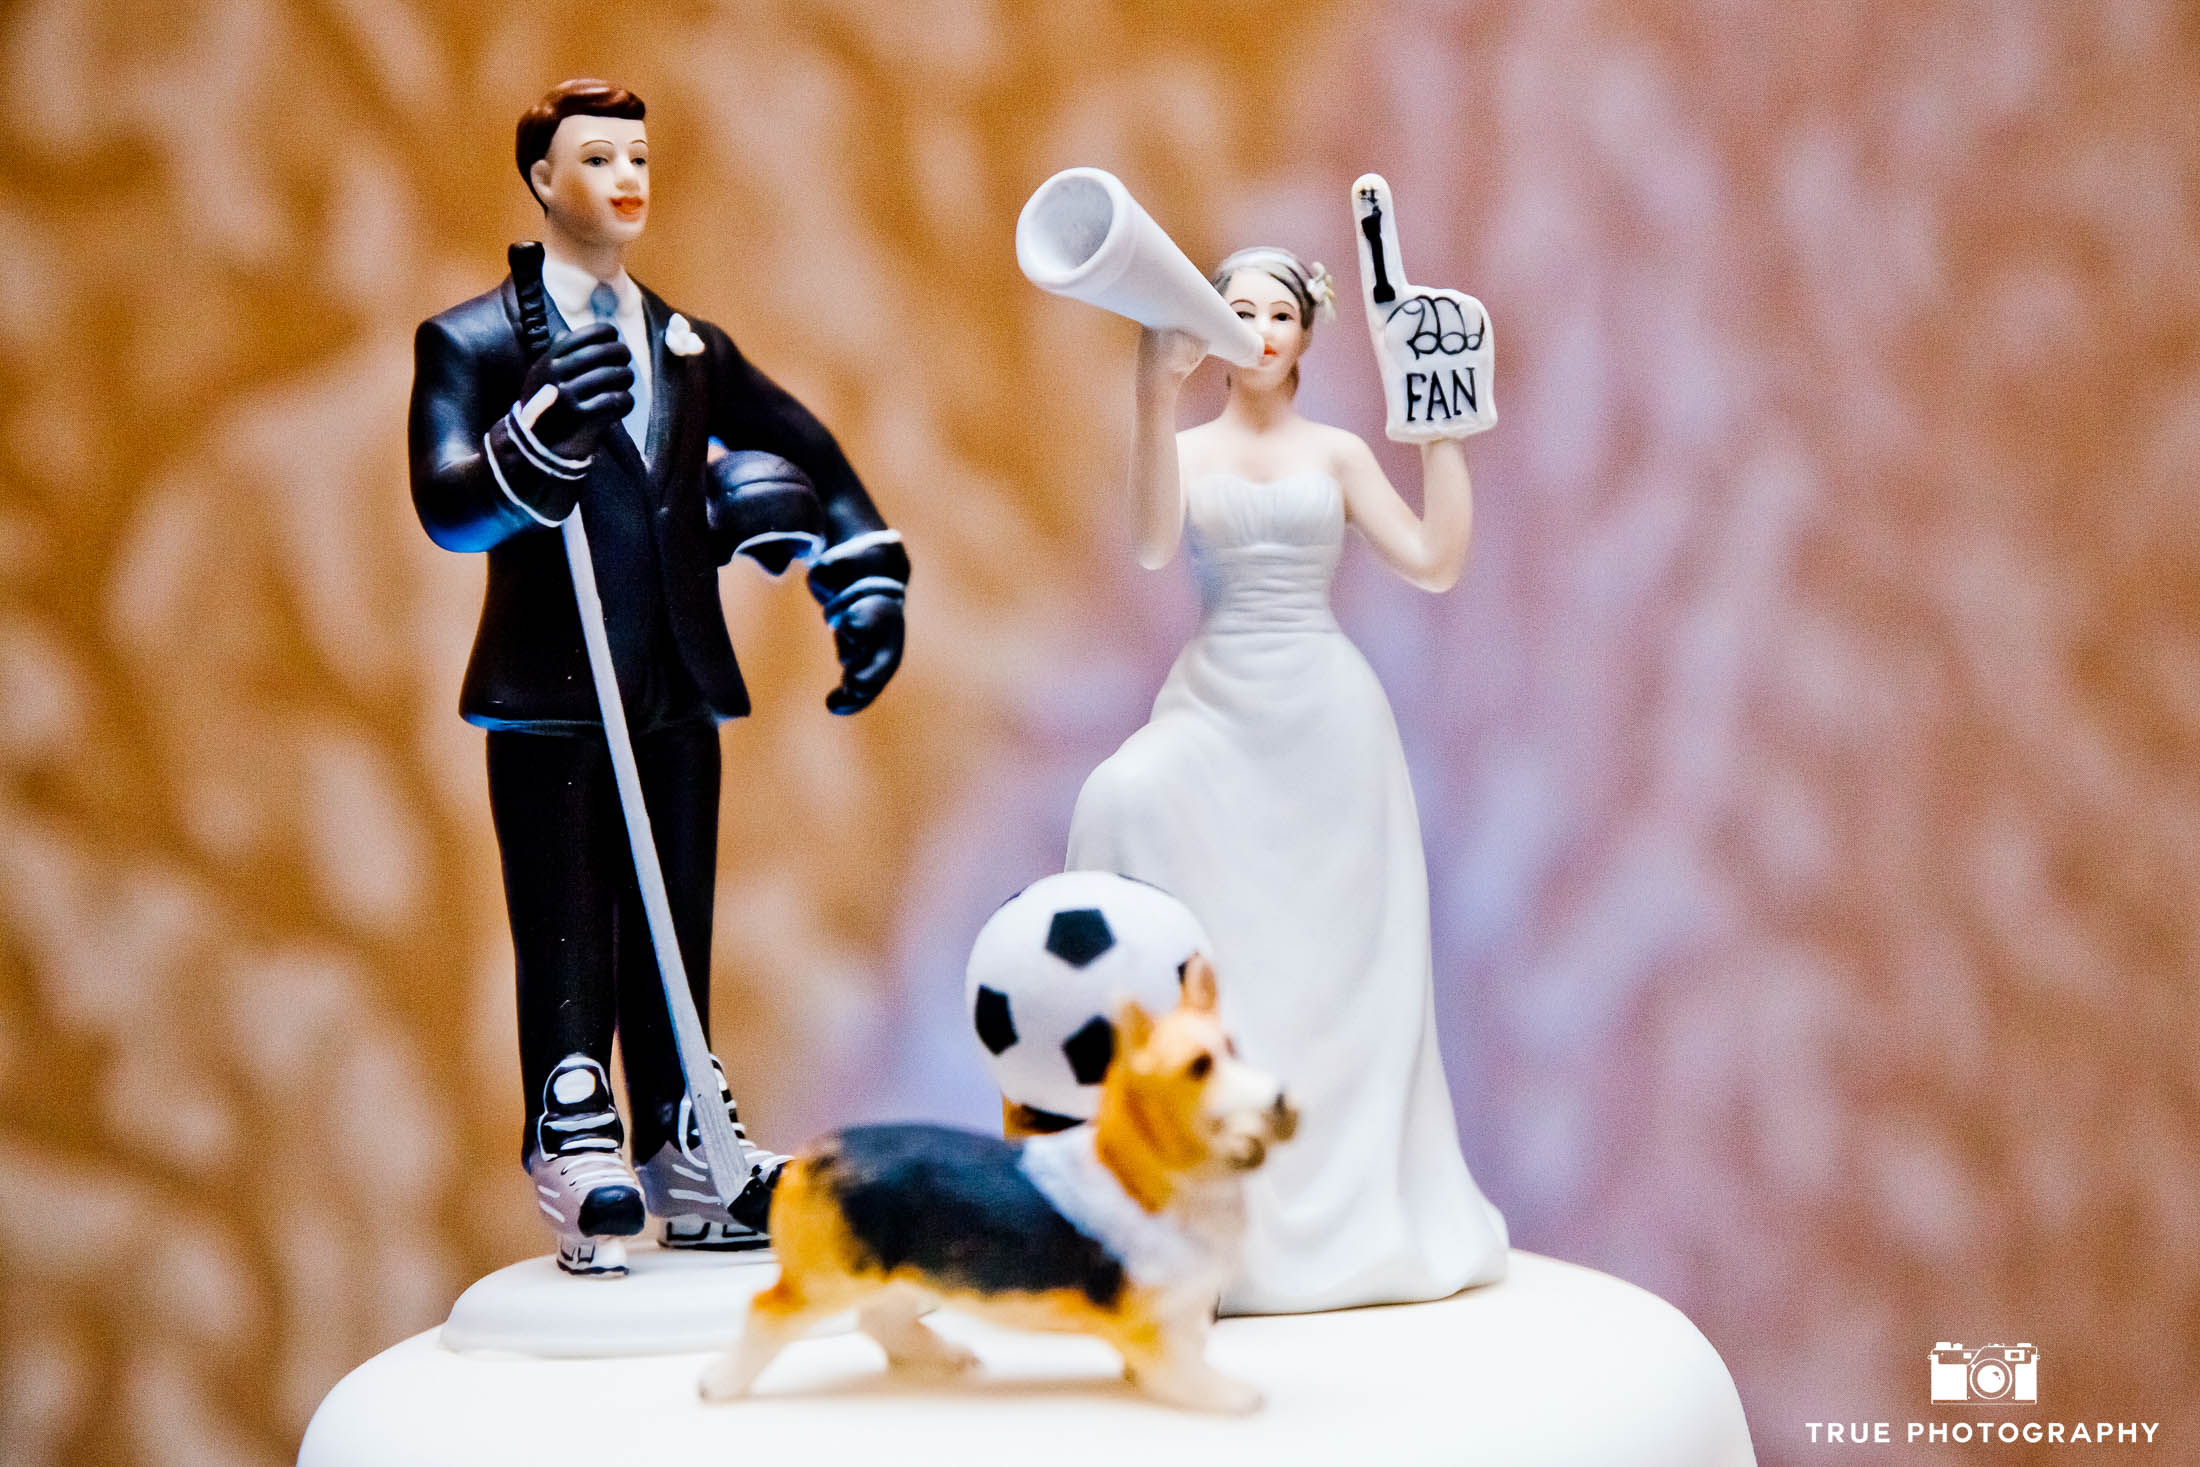 Cute hockey-inspired cake topper with wedding couple